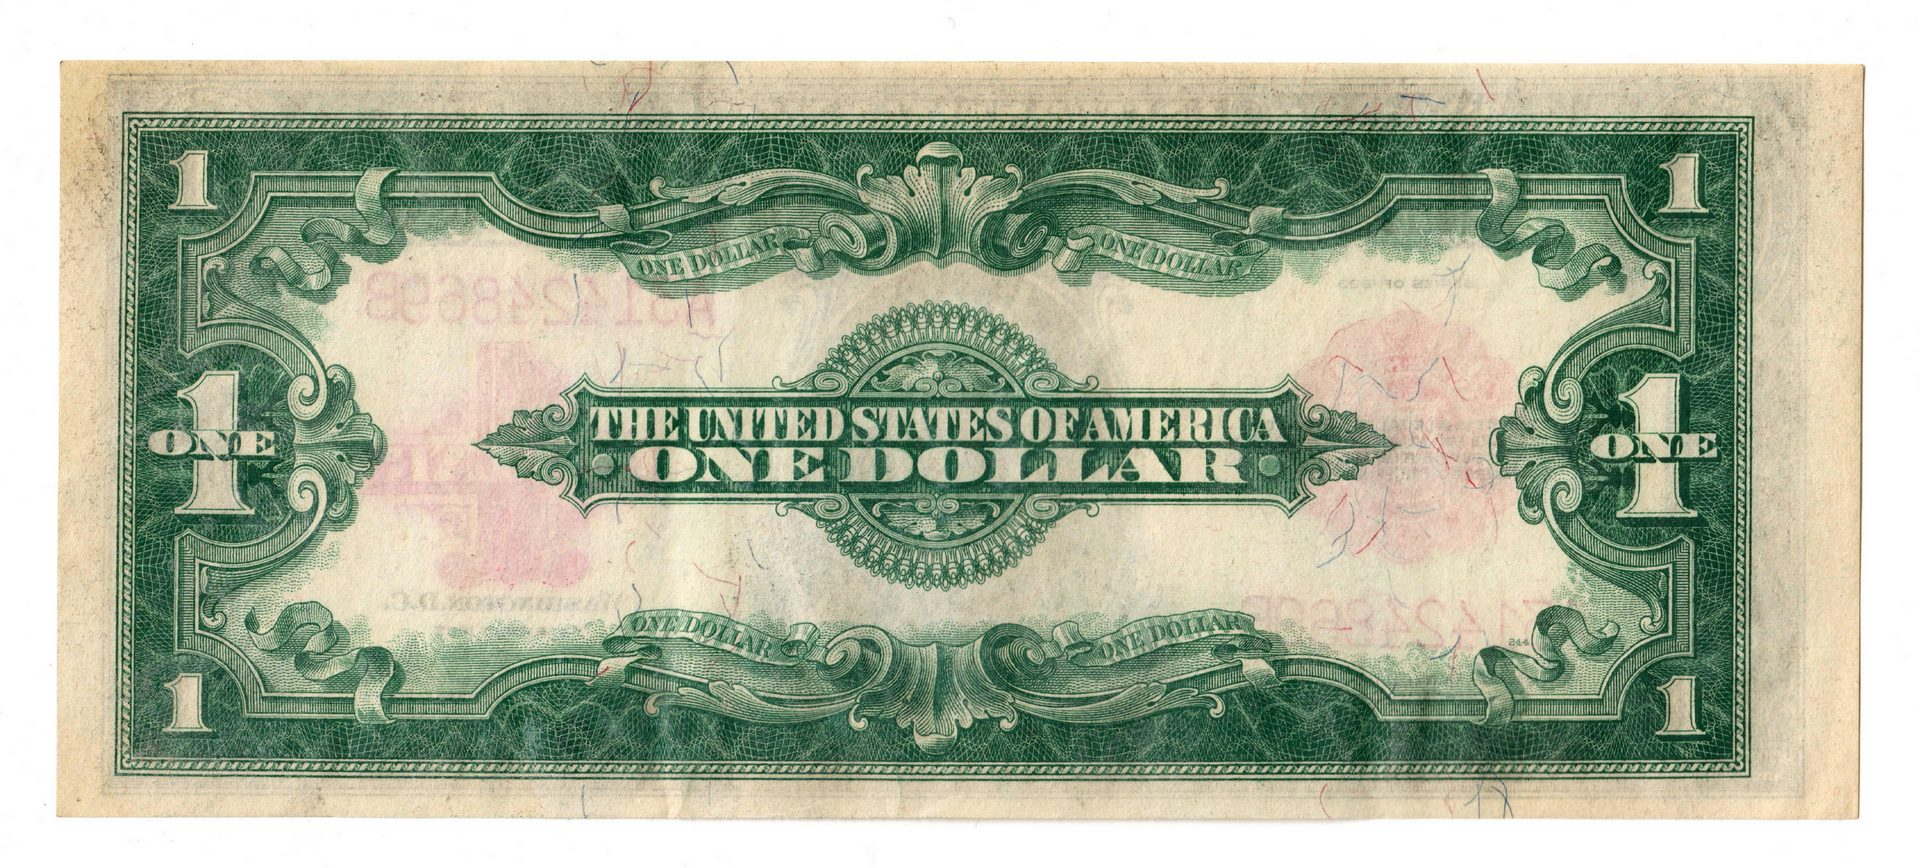 "Lot 20: Four 20th Cent. U.S. $1 Notes, inc. 3 ""Horse Blank"